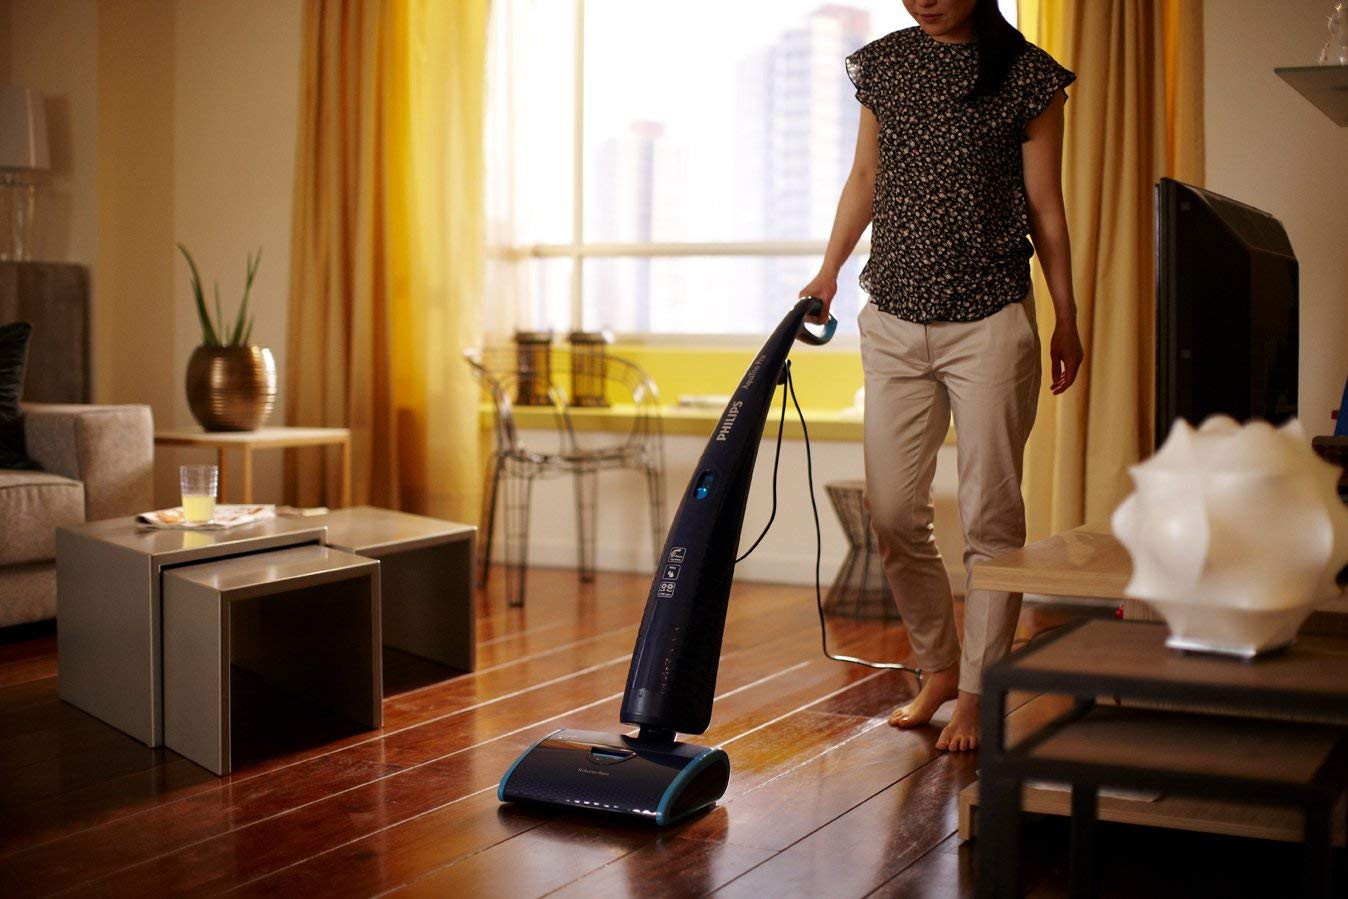 hoover hardwood floor cleaner of philips aquatrio pro fc7080 01 hard floor cleaner with triple for philips aquatrio pro fc7080 01 hard floor cleaner with triple acceleration technology blue amazon co uk kitchen home